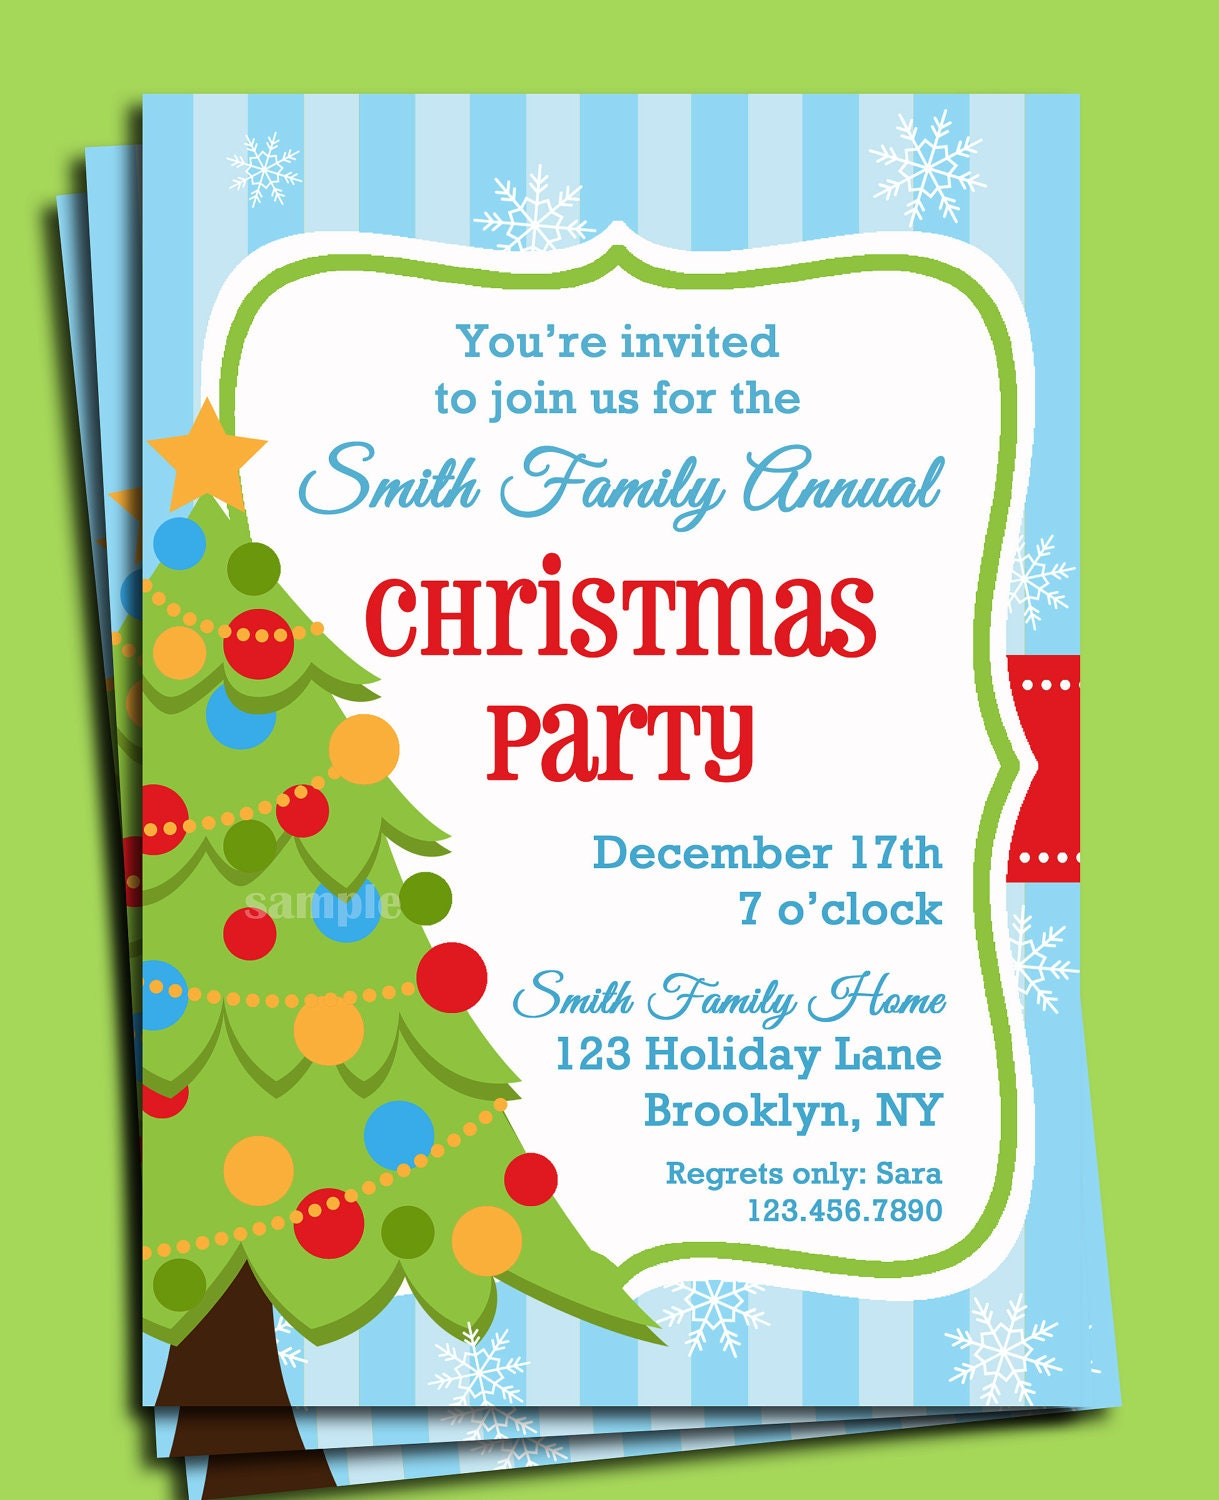 Staff Christmas Party Invite Zrom